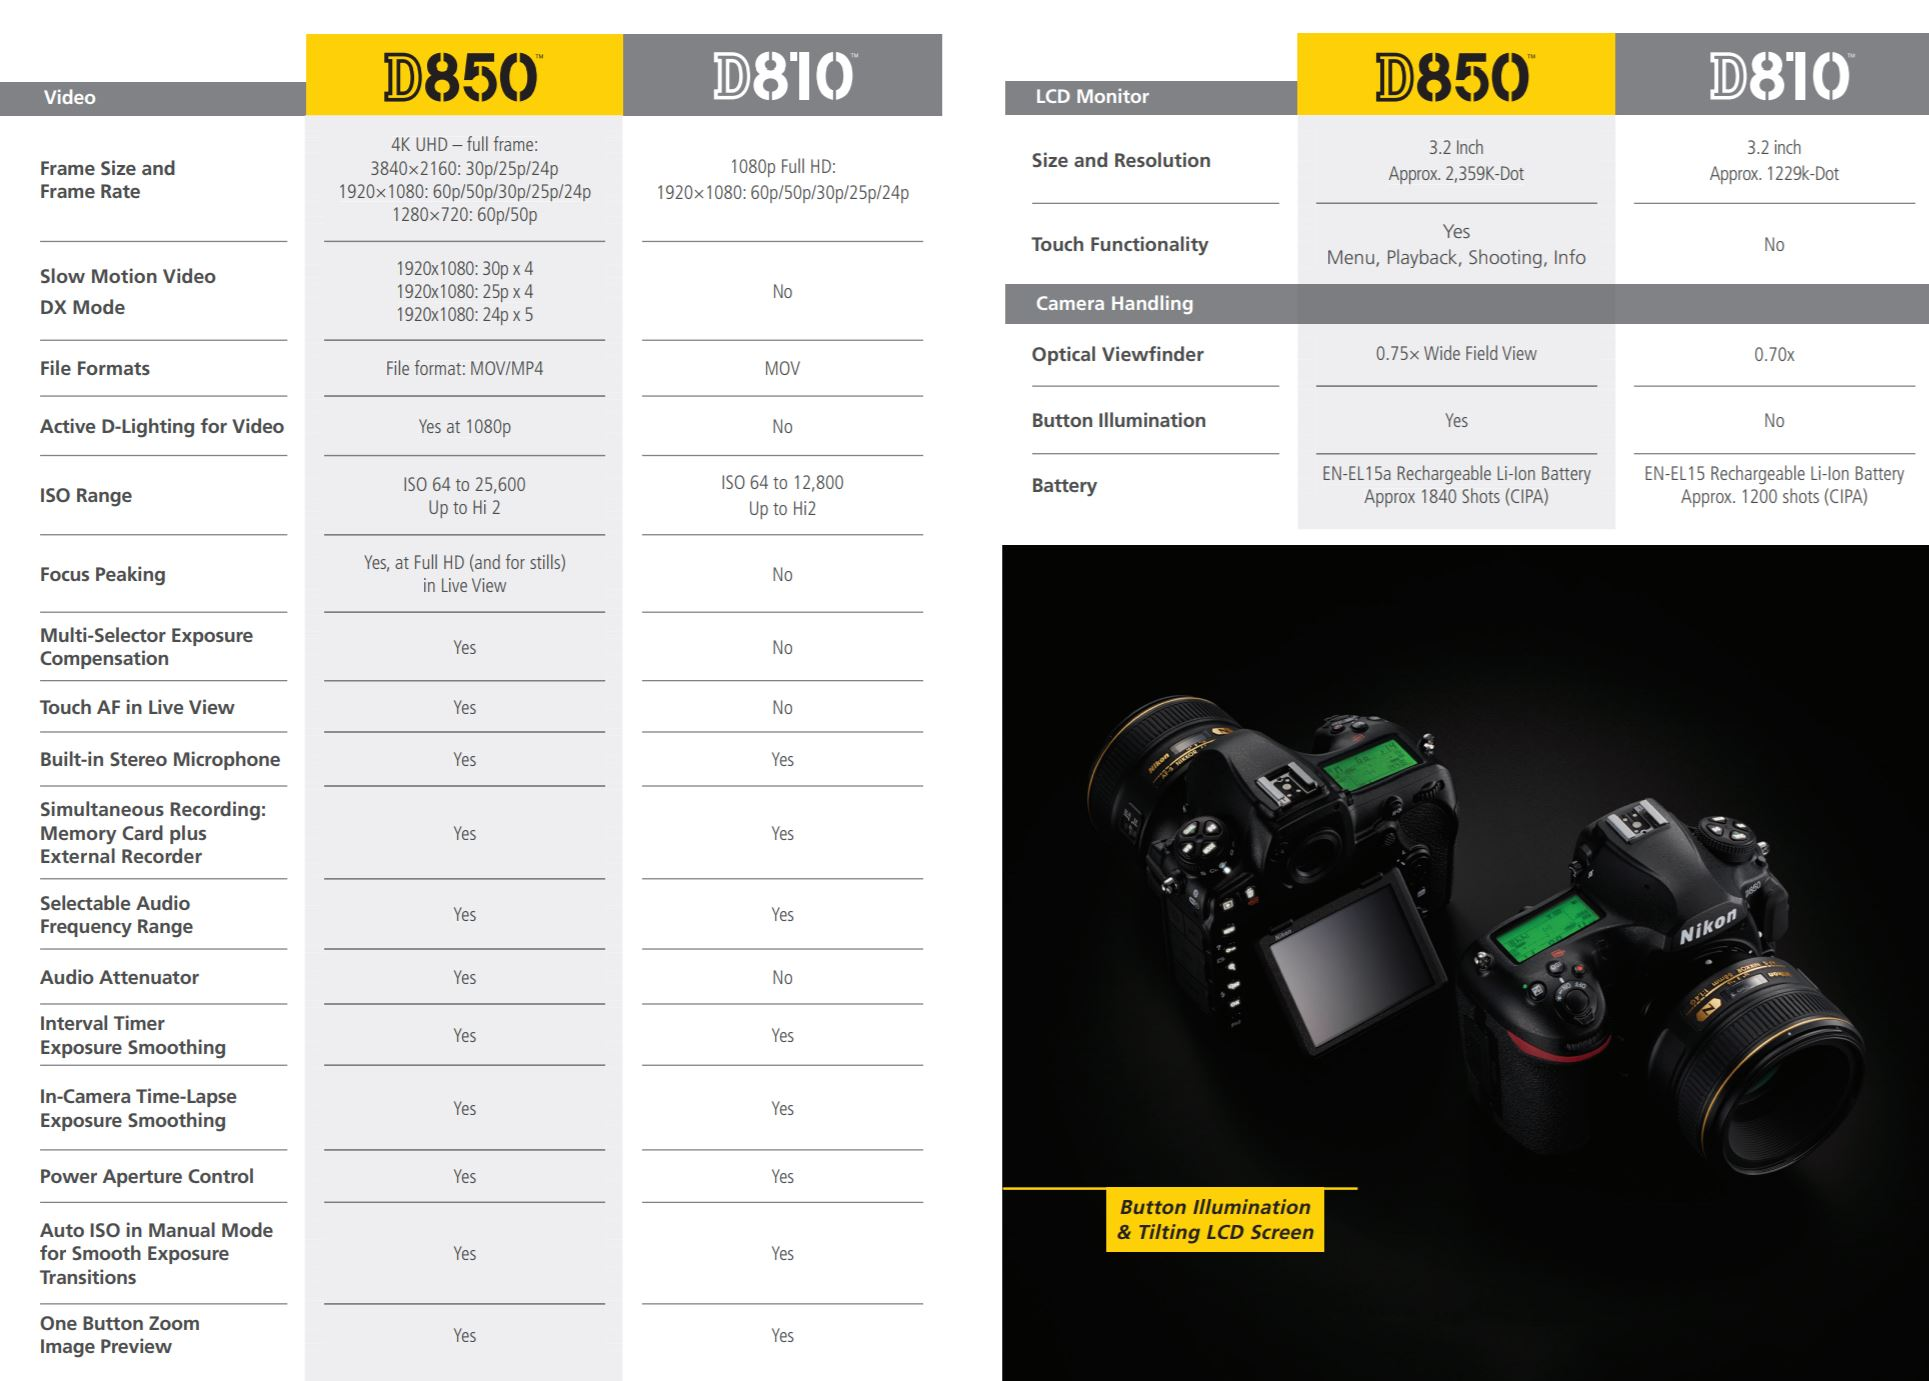 Nikon D850 Vs  Nikon D810 Specs Comparison Guide (PDF